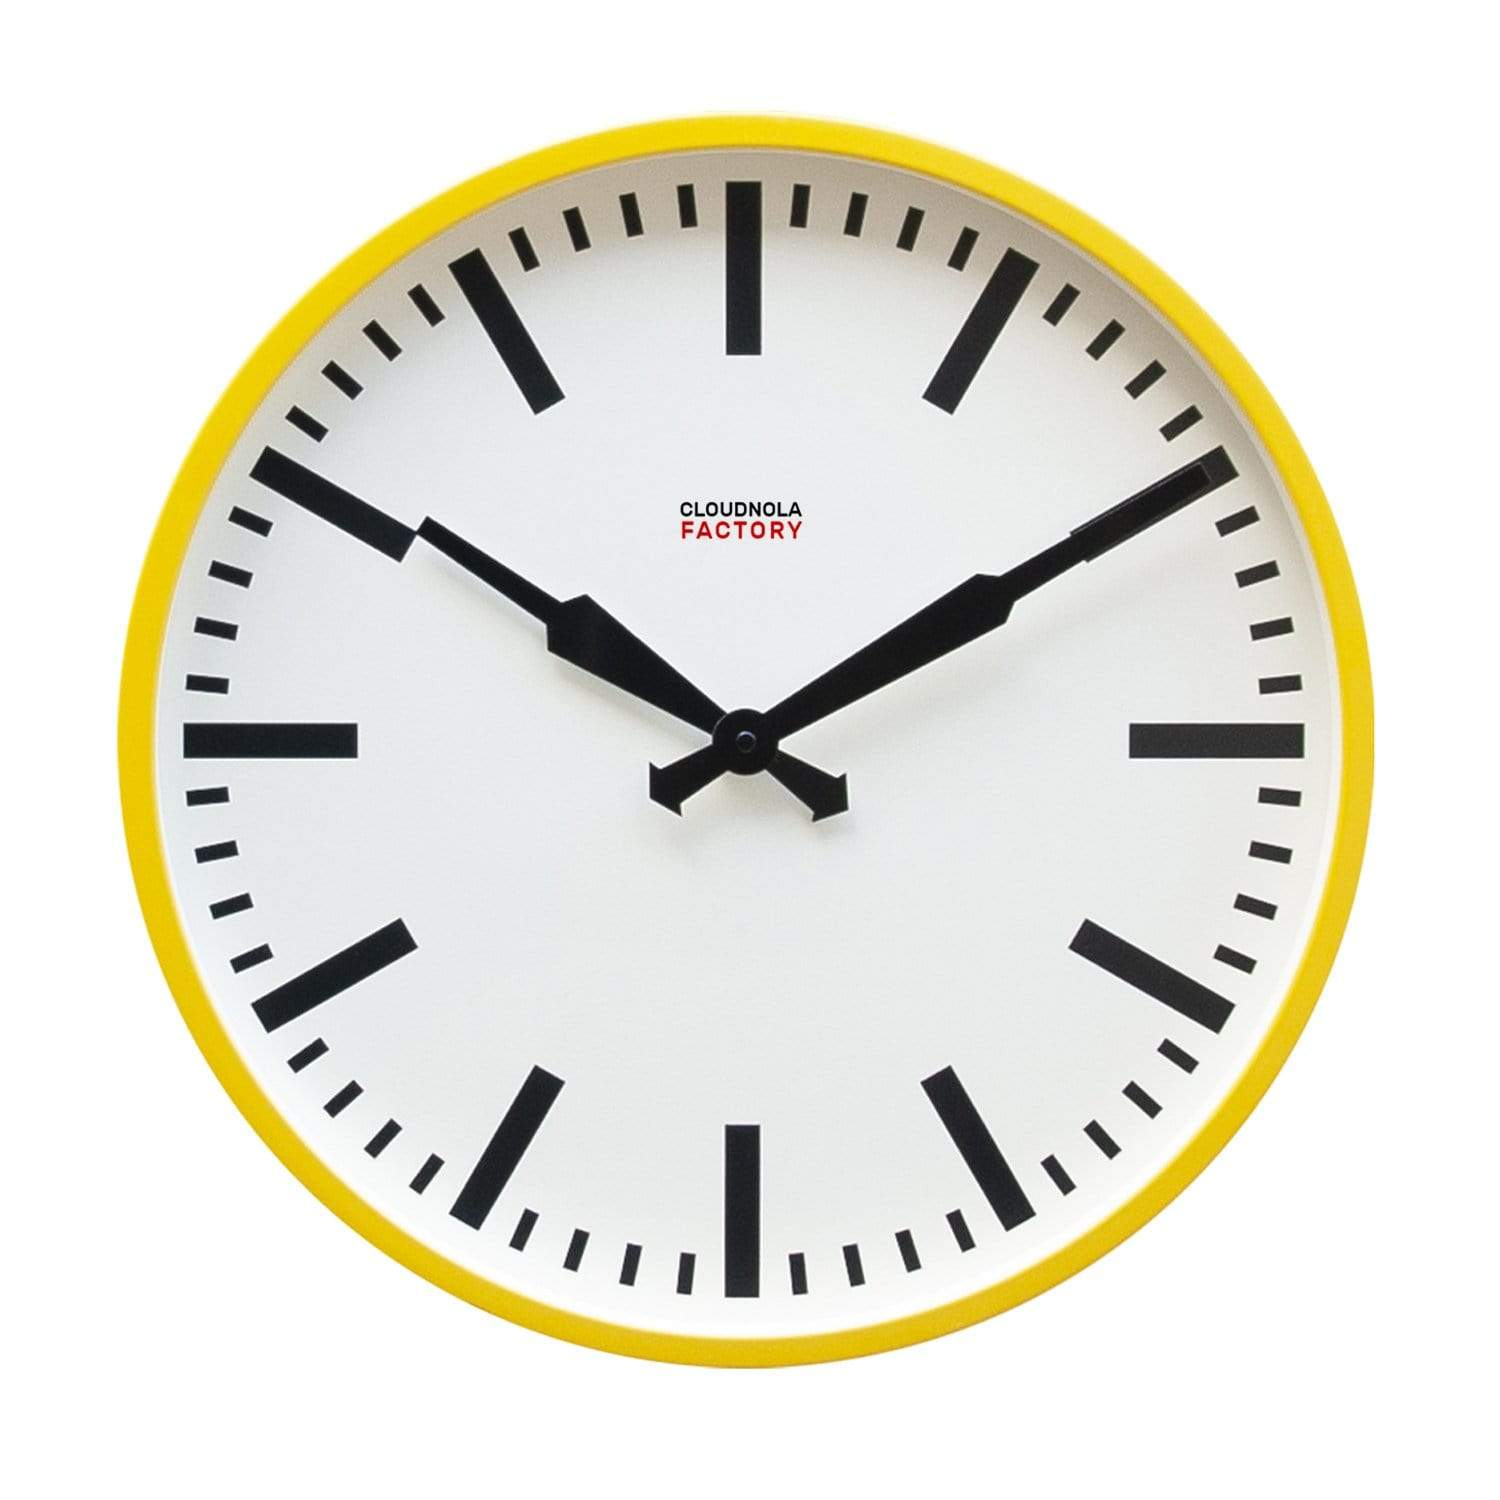 cloudnola Wall Clock Factory Ocher Yellow Station Clock 45cm / 17.7 Inches